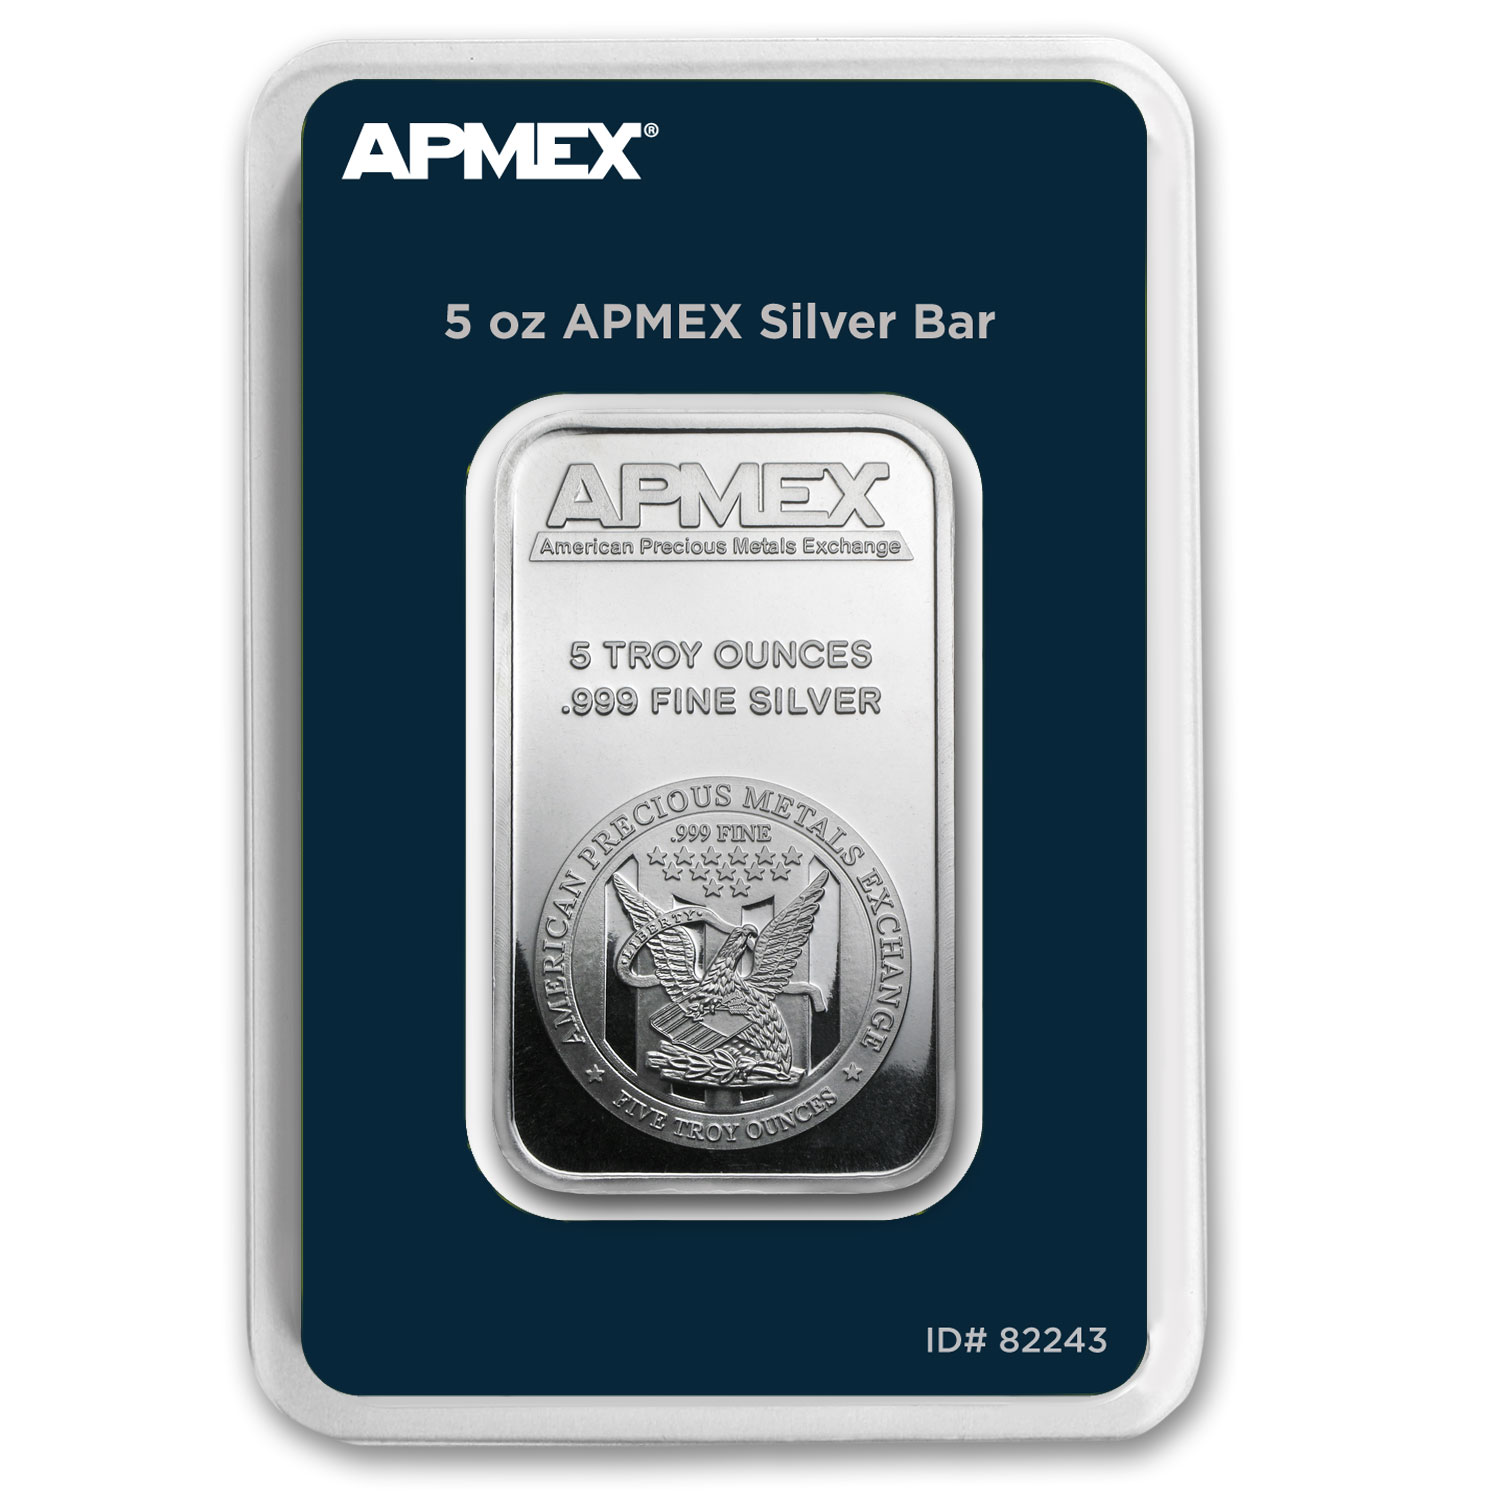 5 oz Silver Bar - APMEX (TEP Packaging)